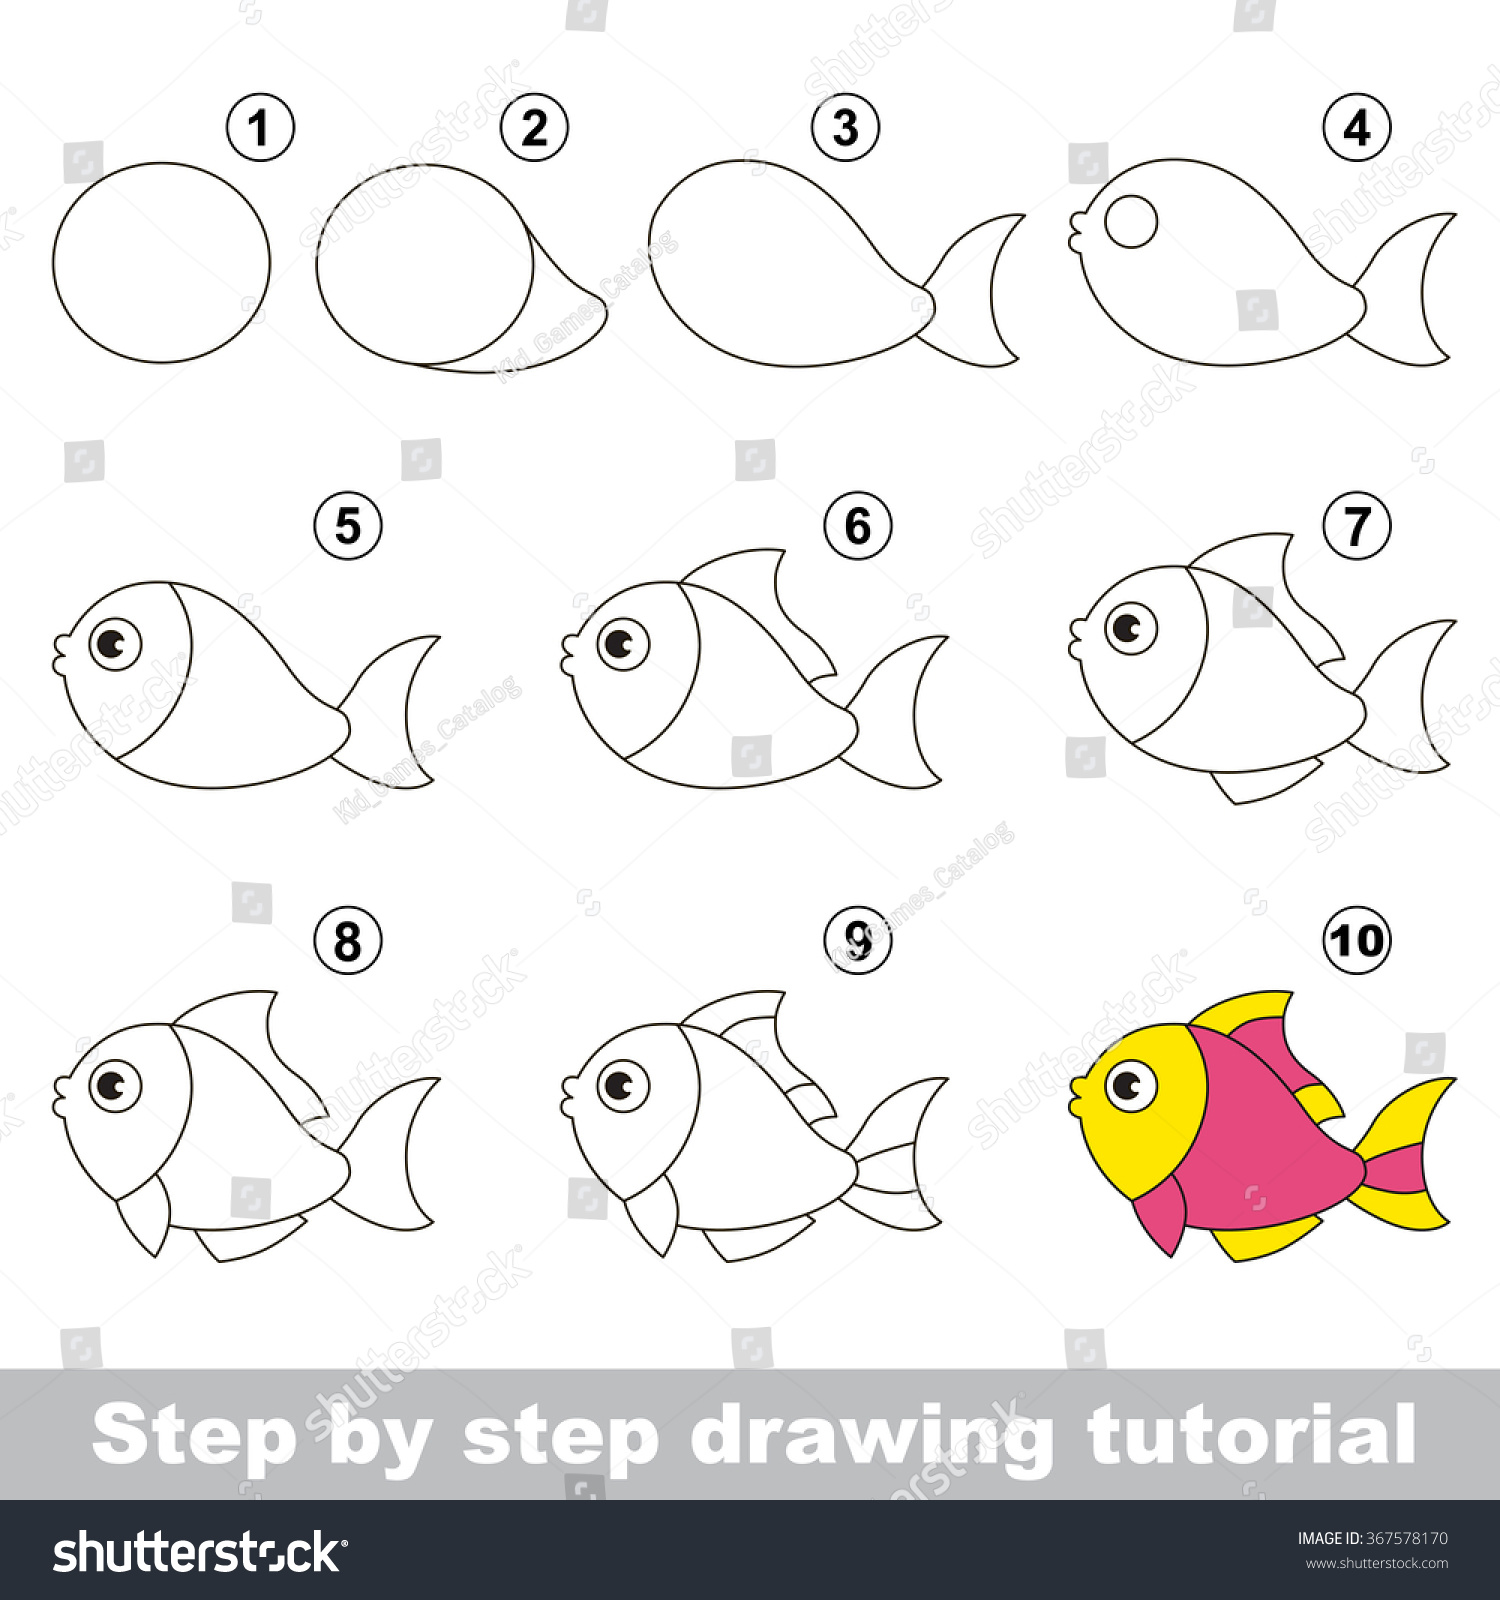 how to draw cartoons step by step for kids free